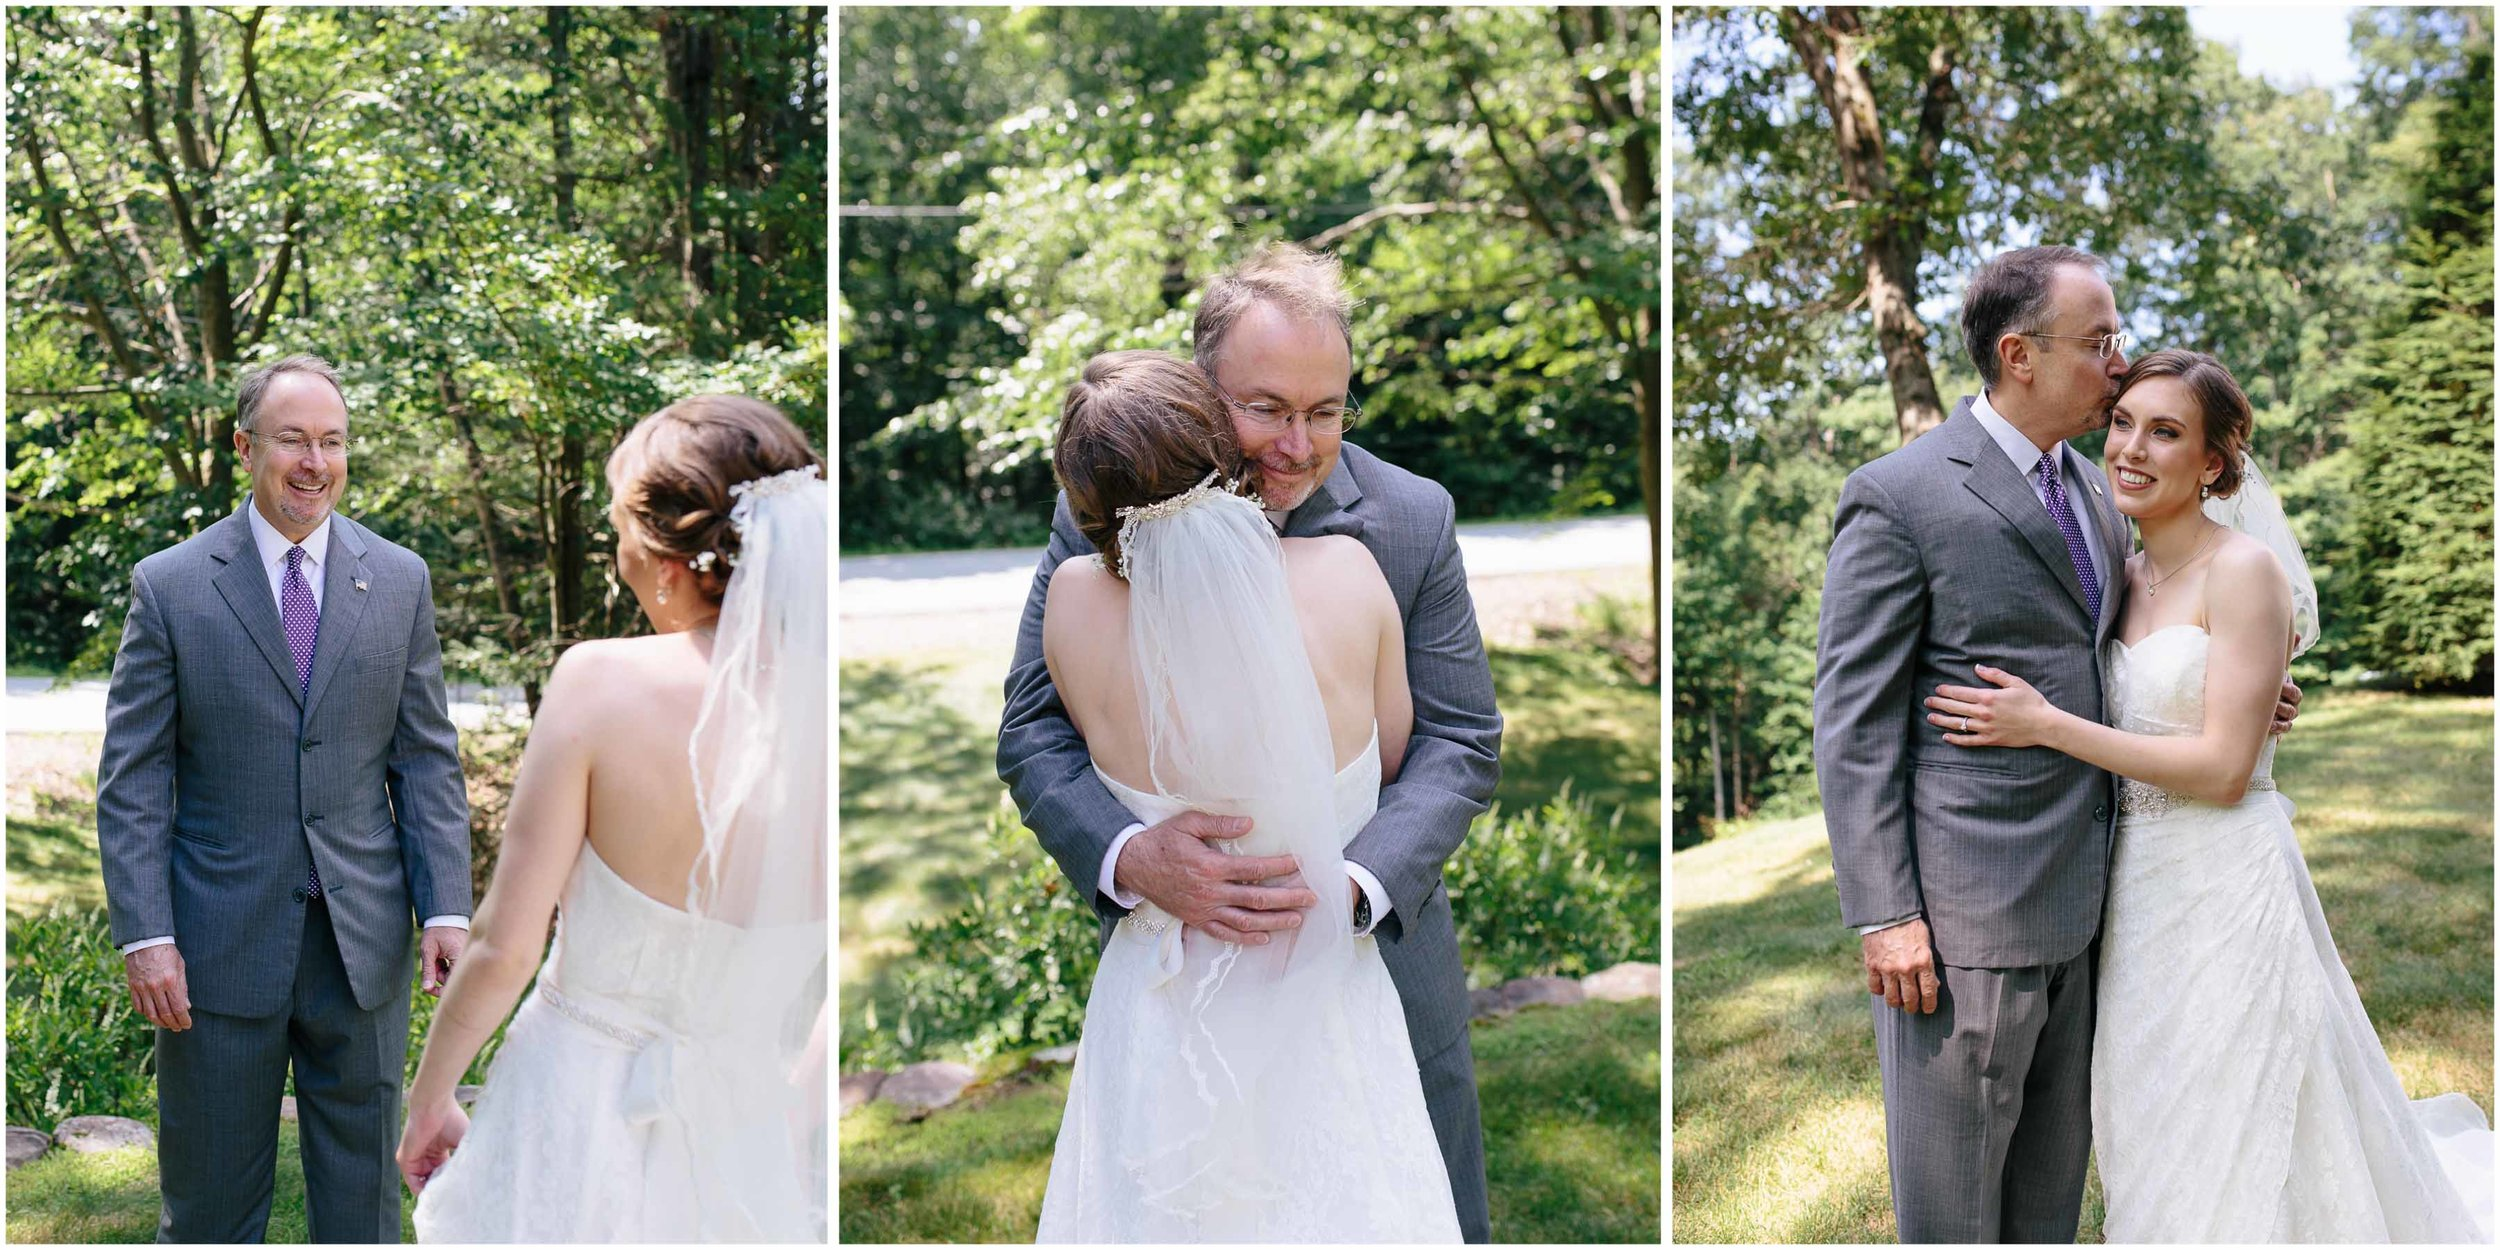 Sunny New Hampshire Summer Wedding at Mile Away Restaurant - father of the bride